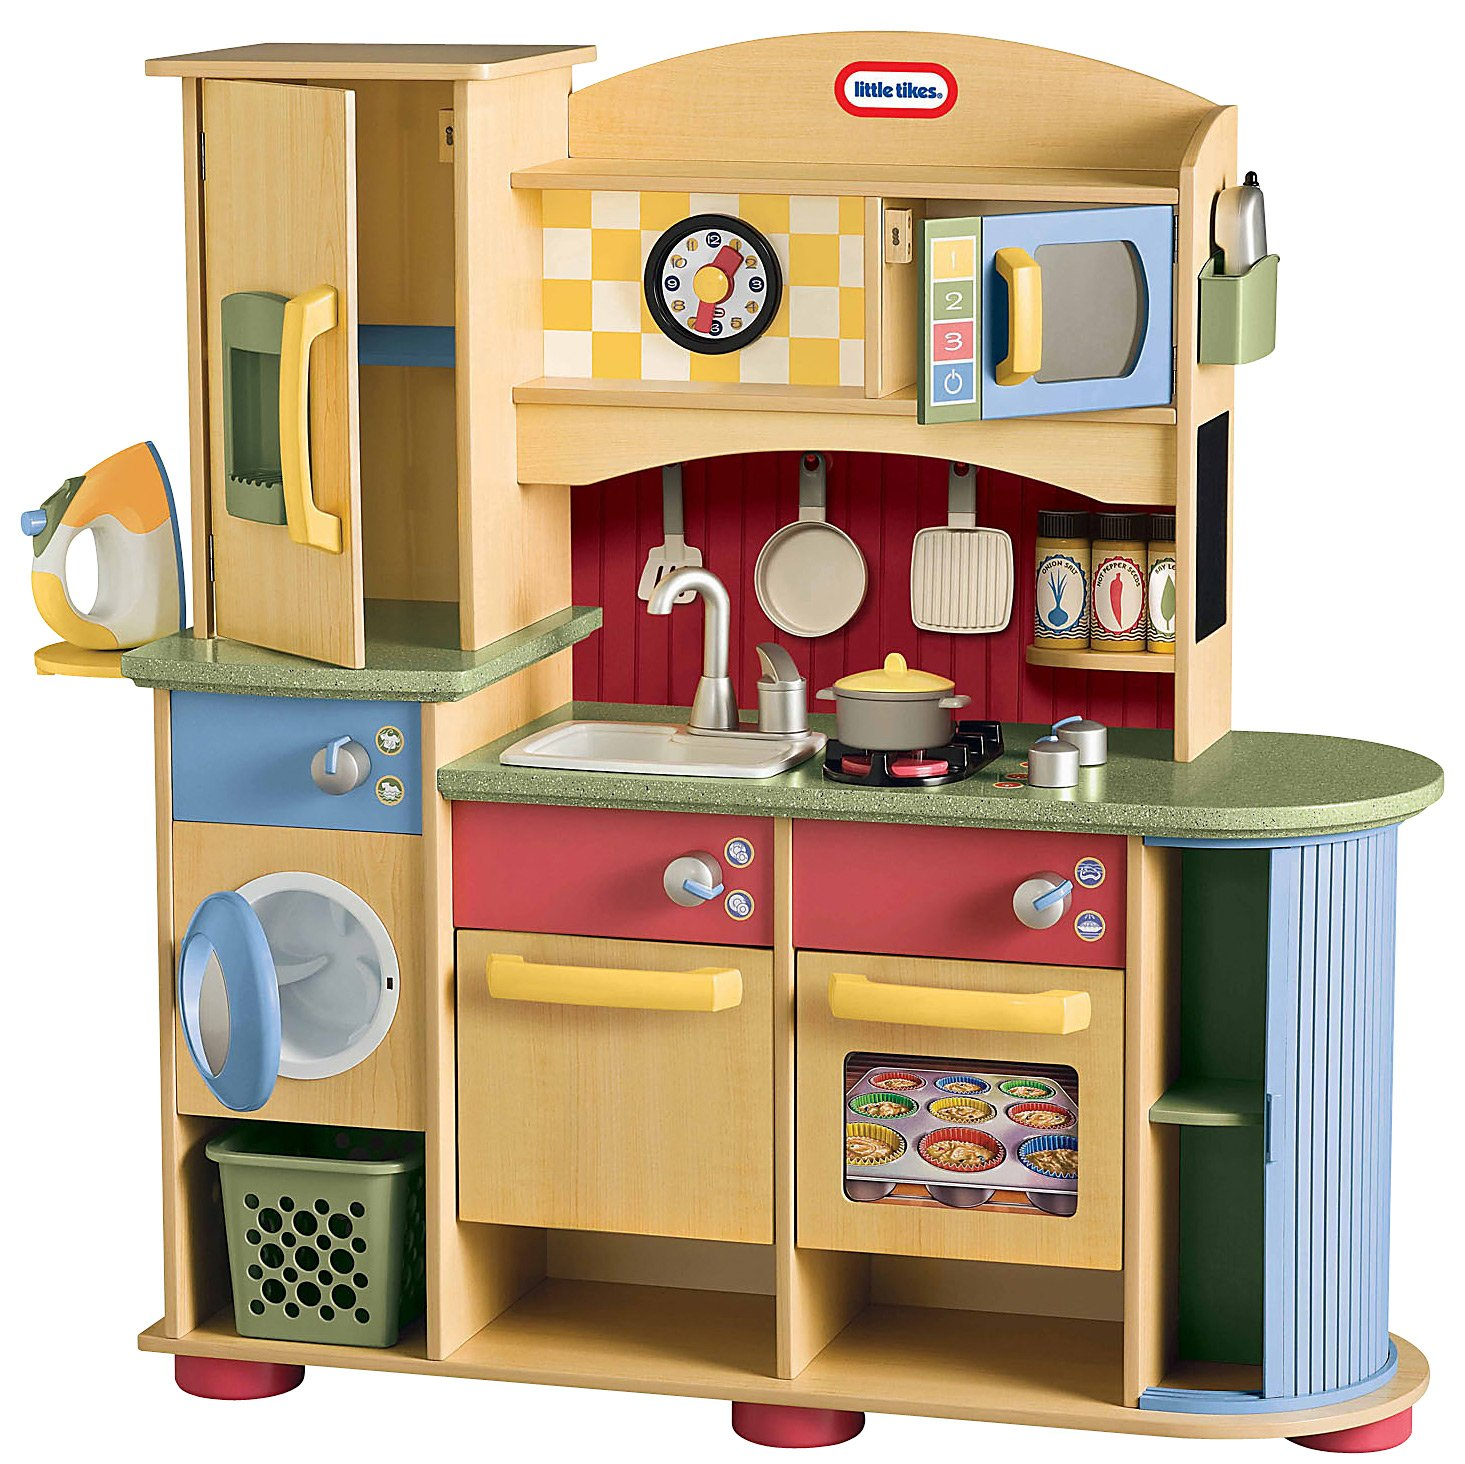 Little tikes deluxe wooden kitchen and laundry center Kitchen setting pictures